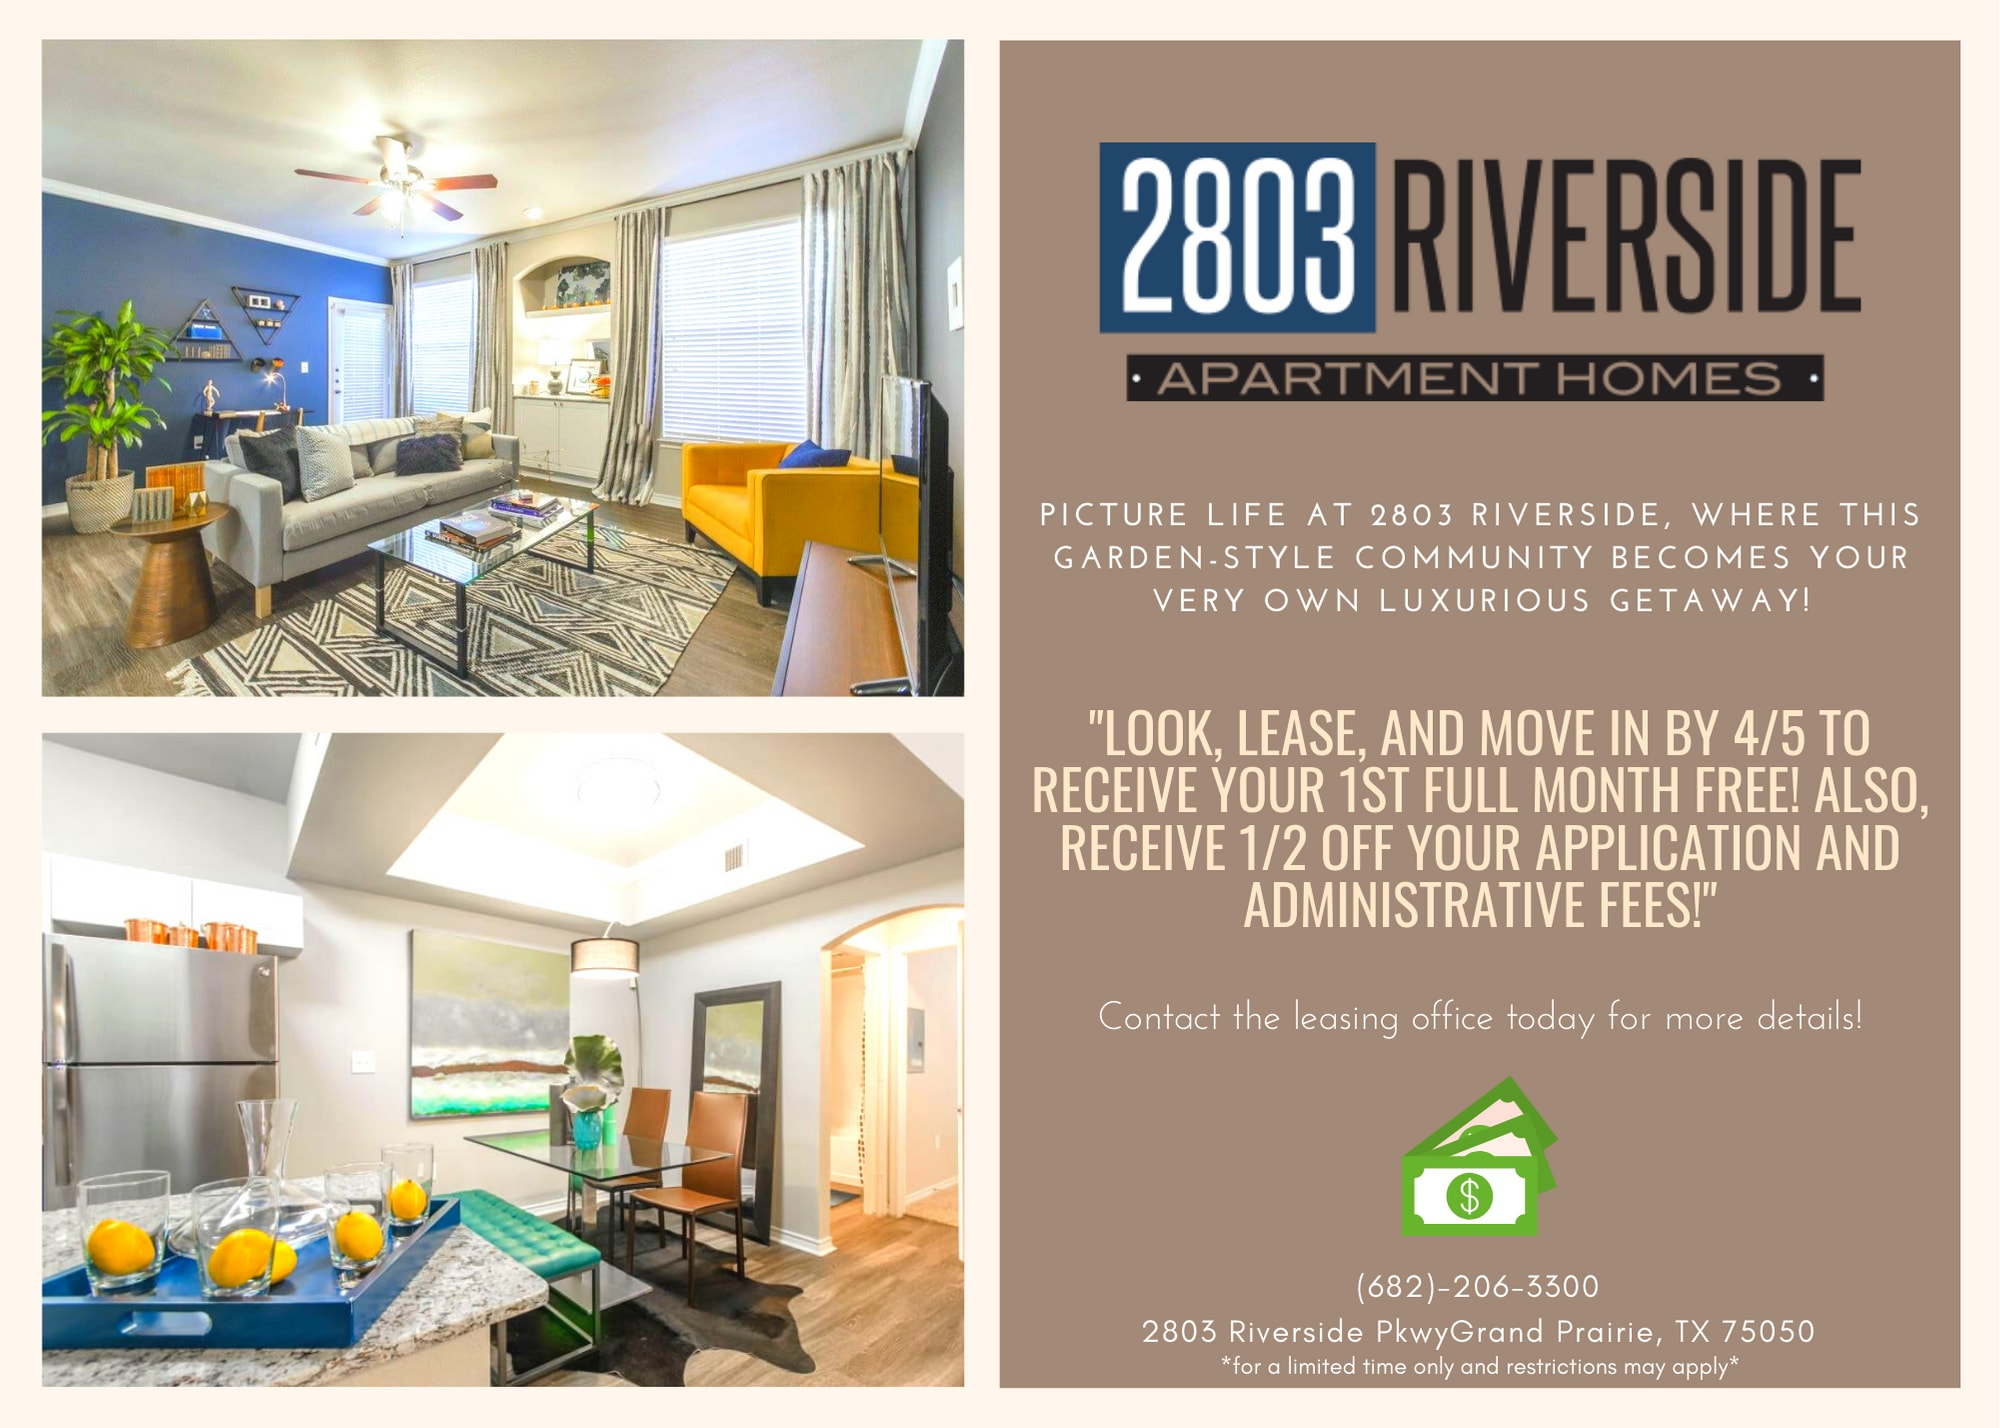 2803 Riverside current special